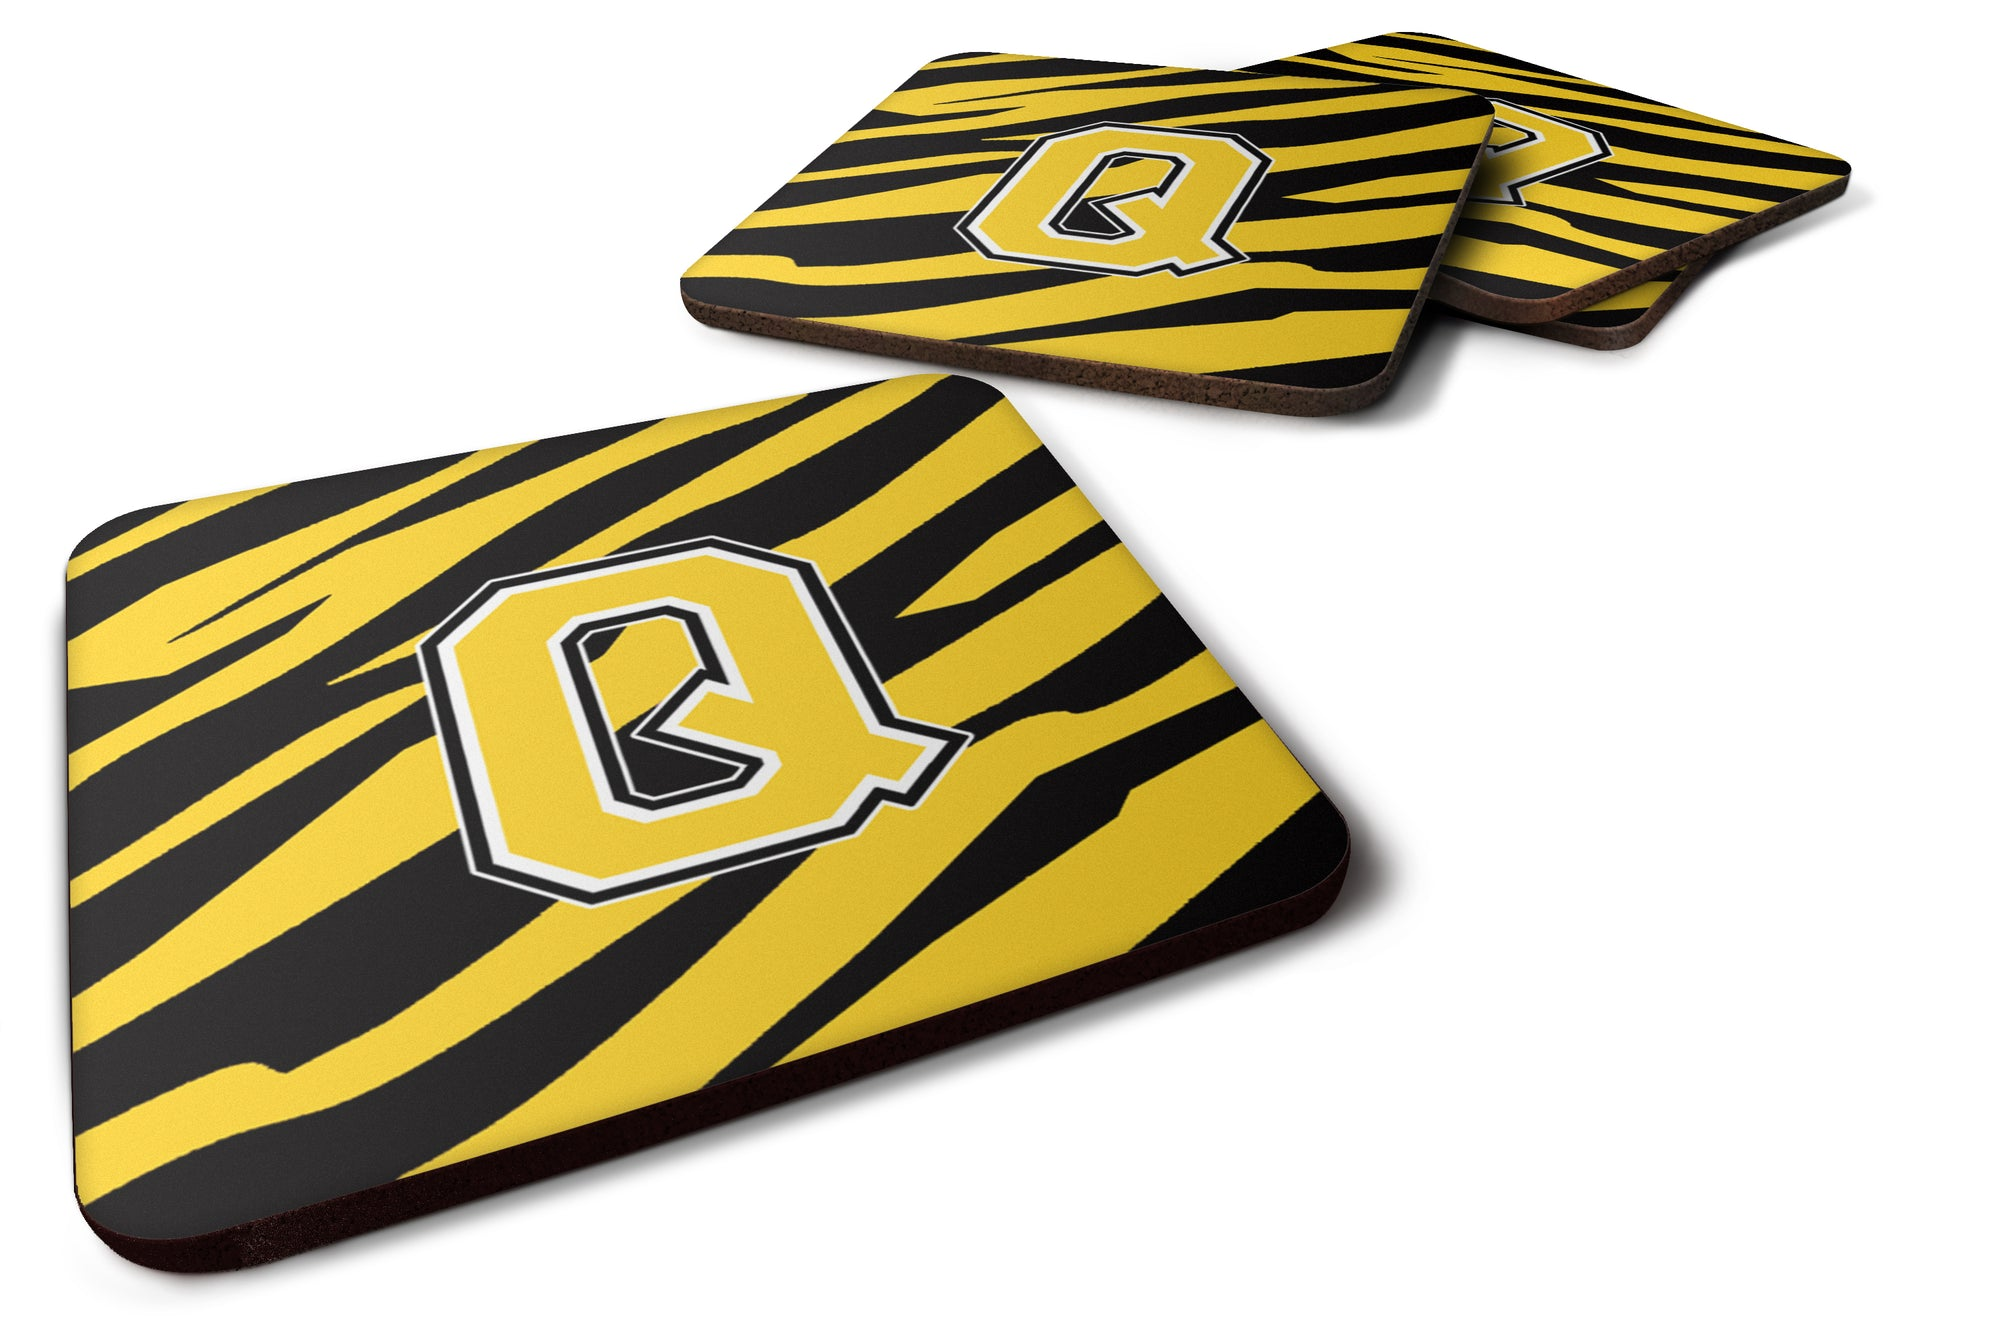 Set of 4 Monogram - Tiger Stripe - Black Gold Foam Coasters Initial Letter Q by Caroline's Treasures